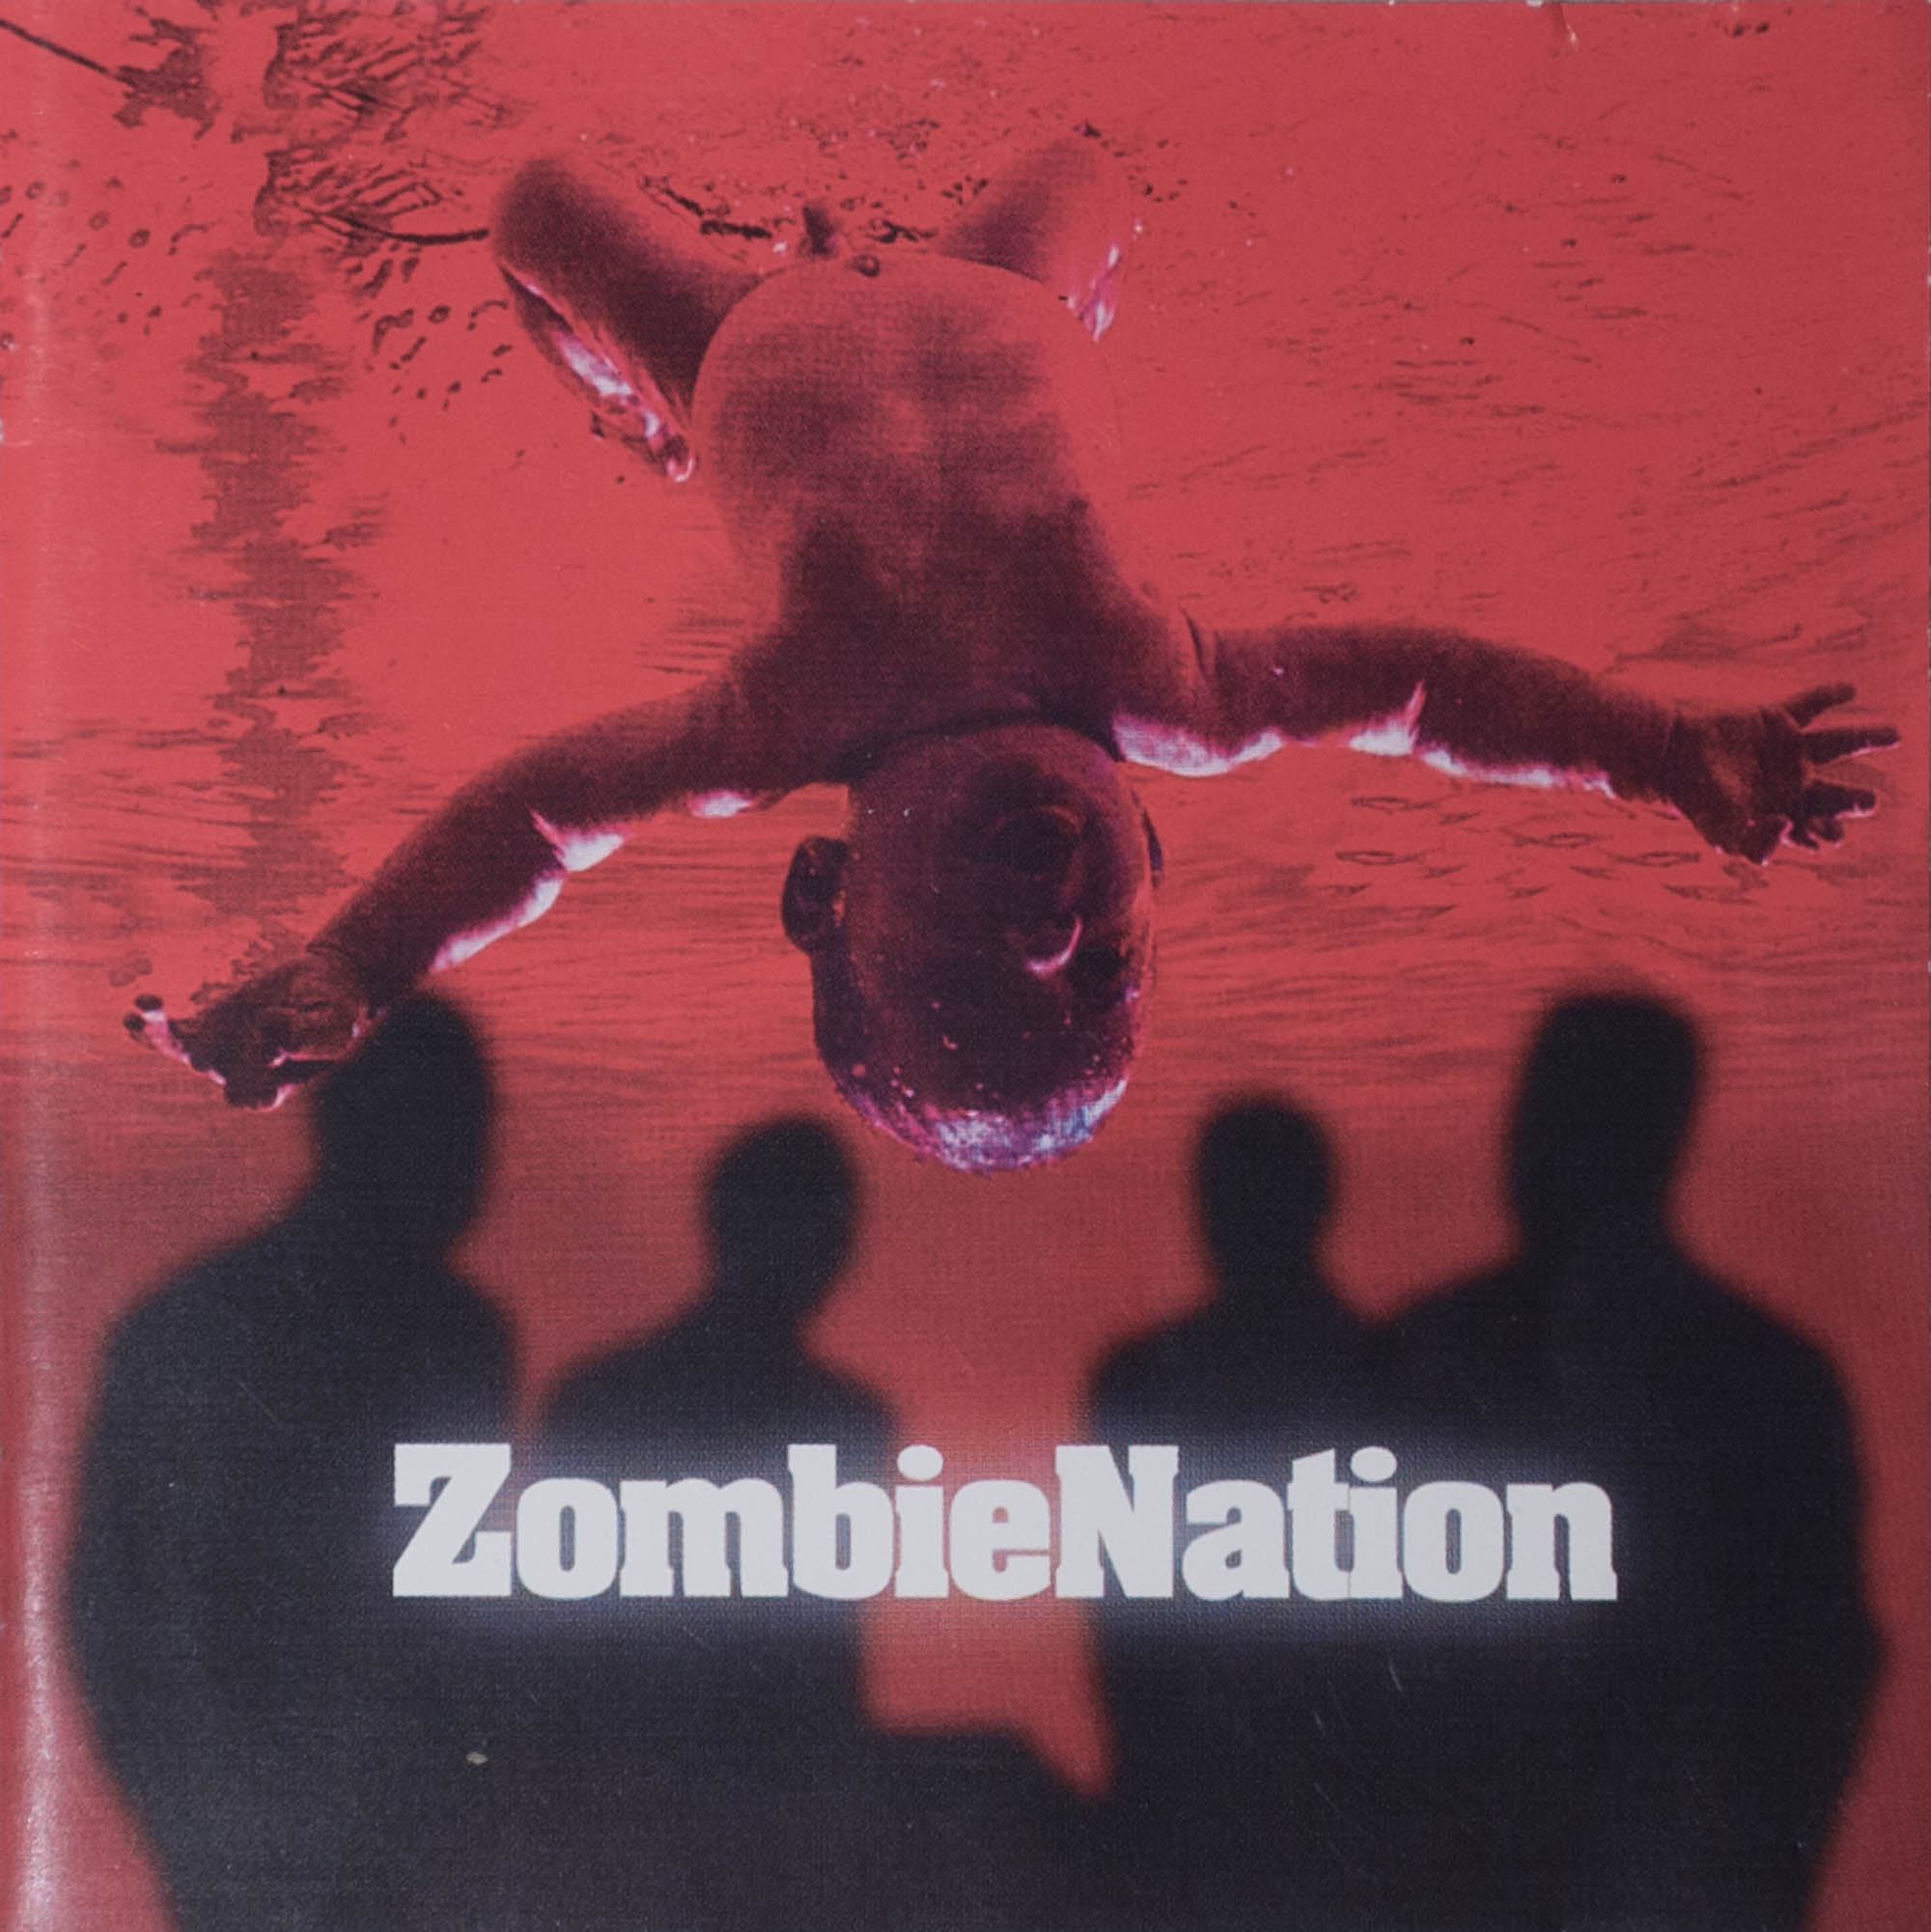 Zombie Nation - Leichensschmaus LP (1999) - cover artwork